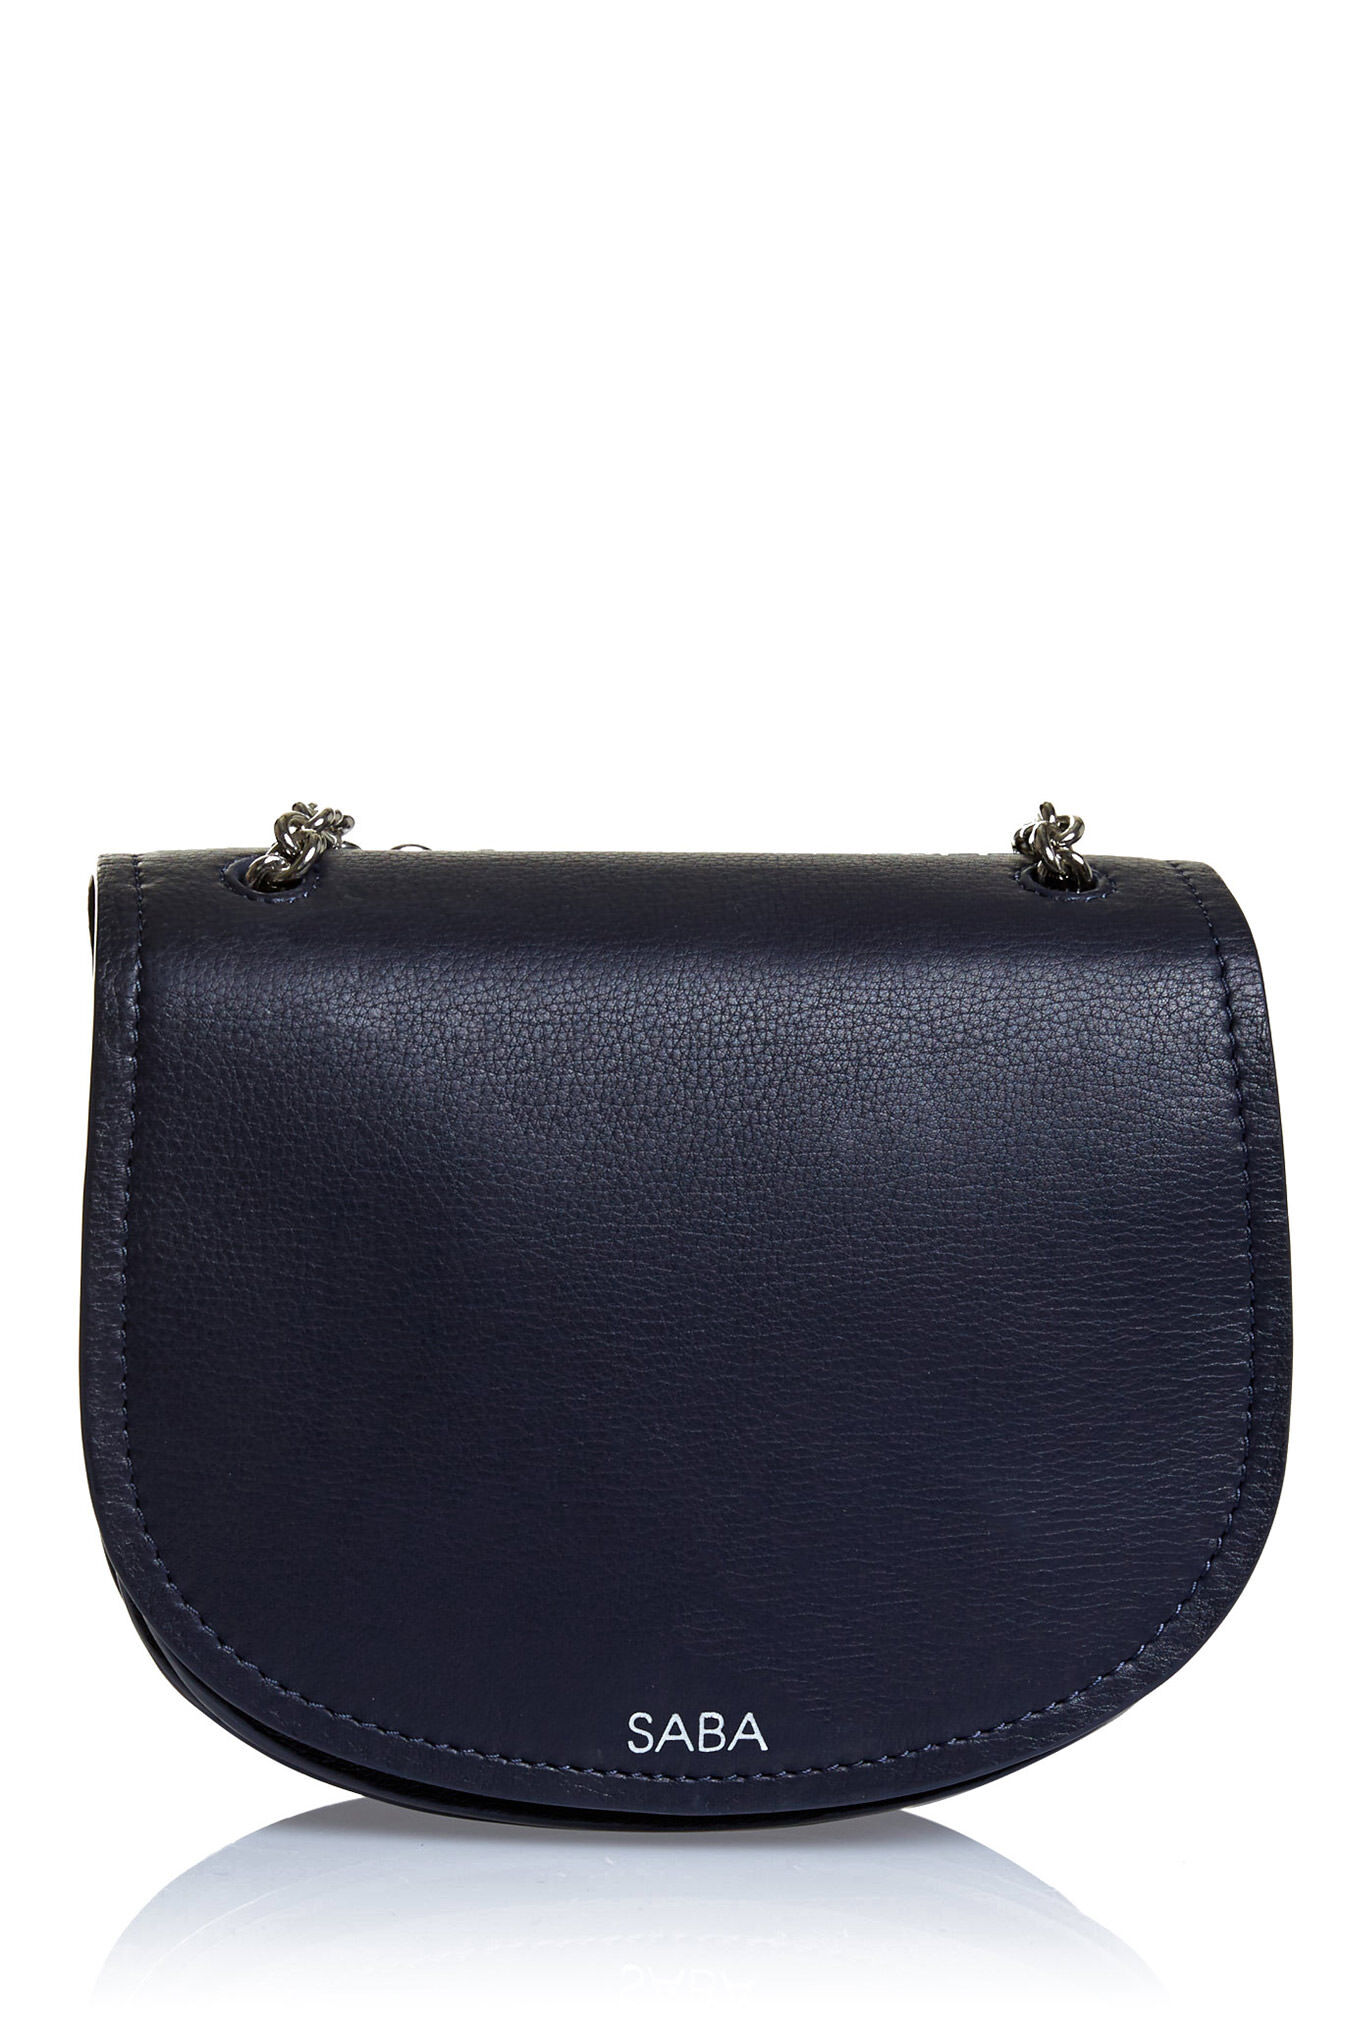 saba holly mini saddle baginkonesize